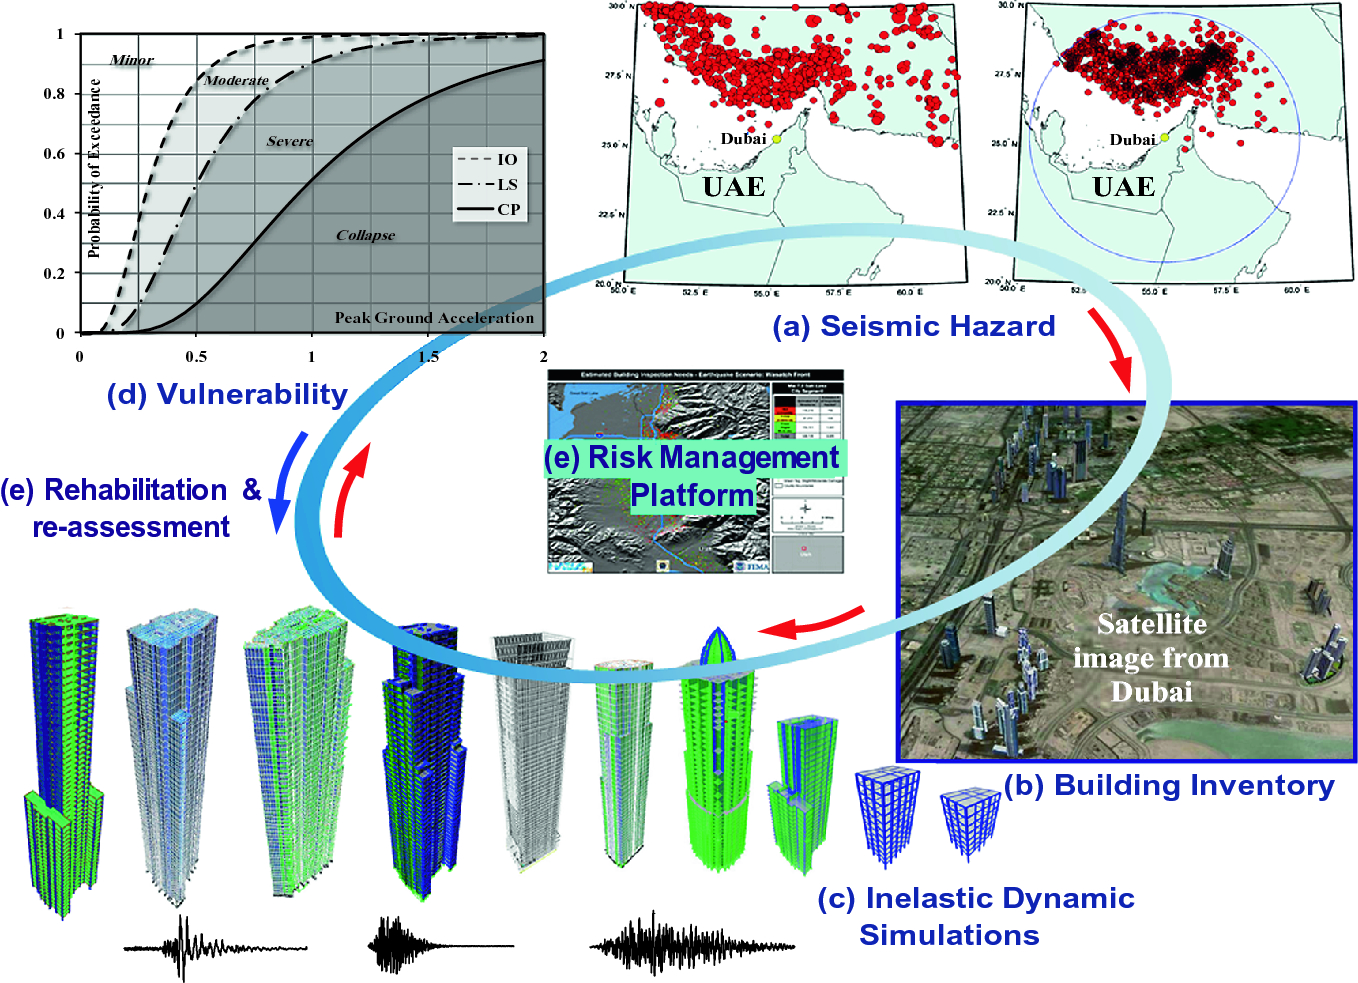 Earthquake Risk Management Systems and Their Applications